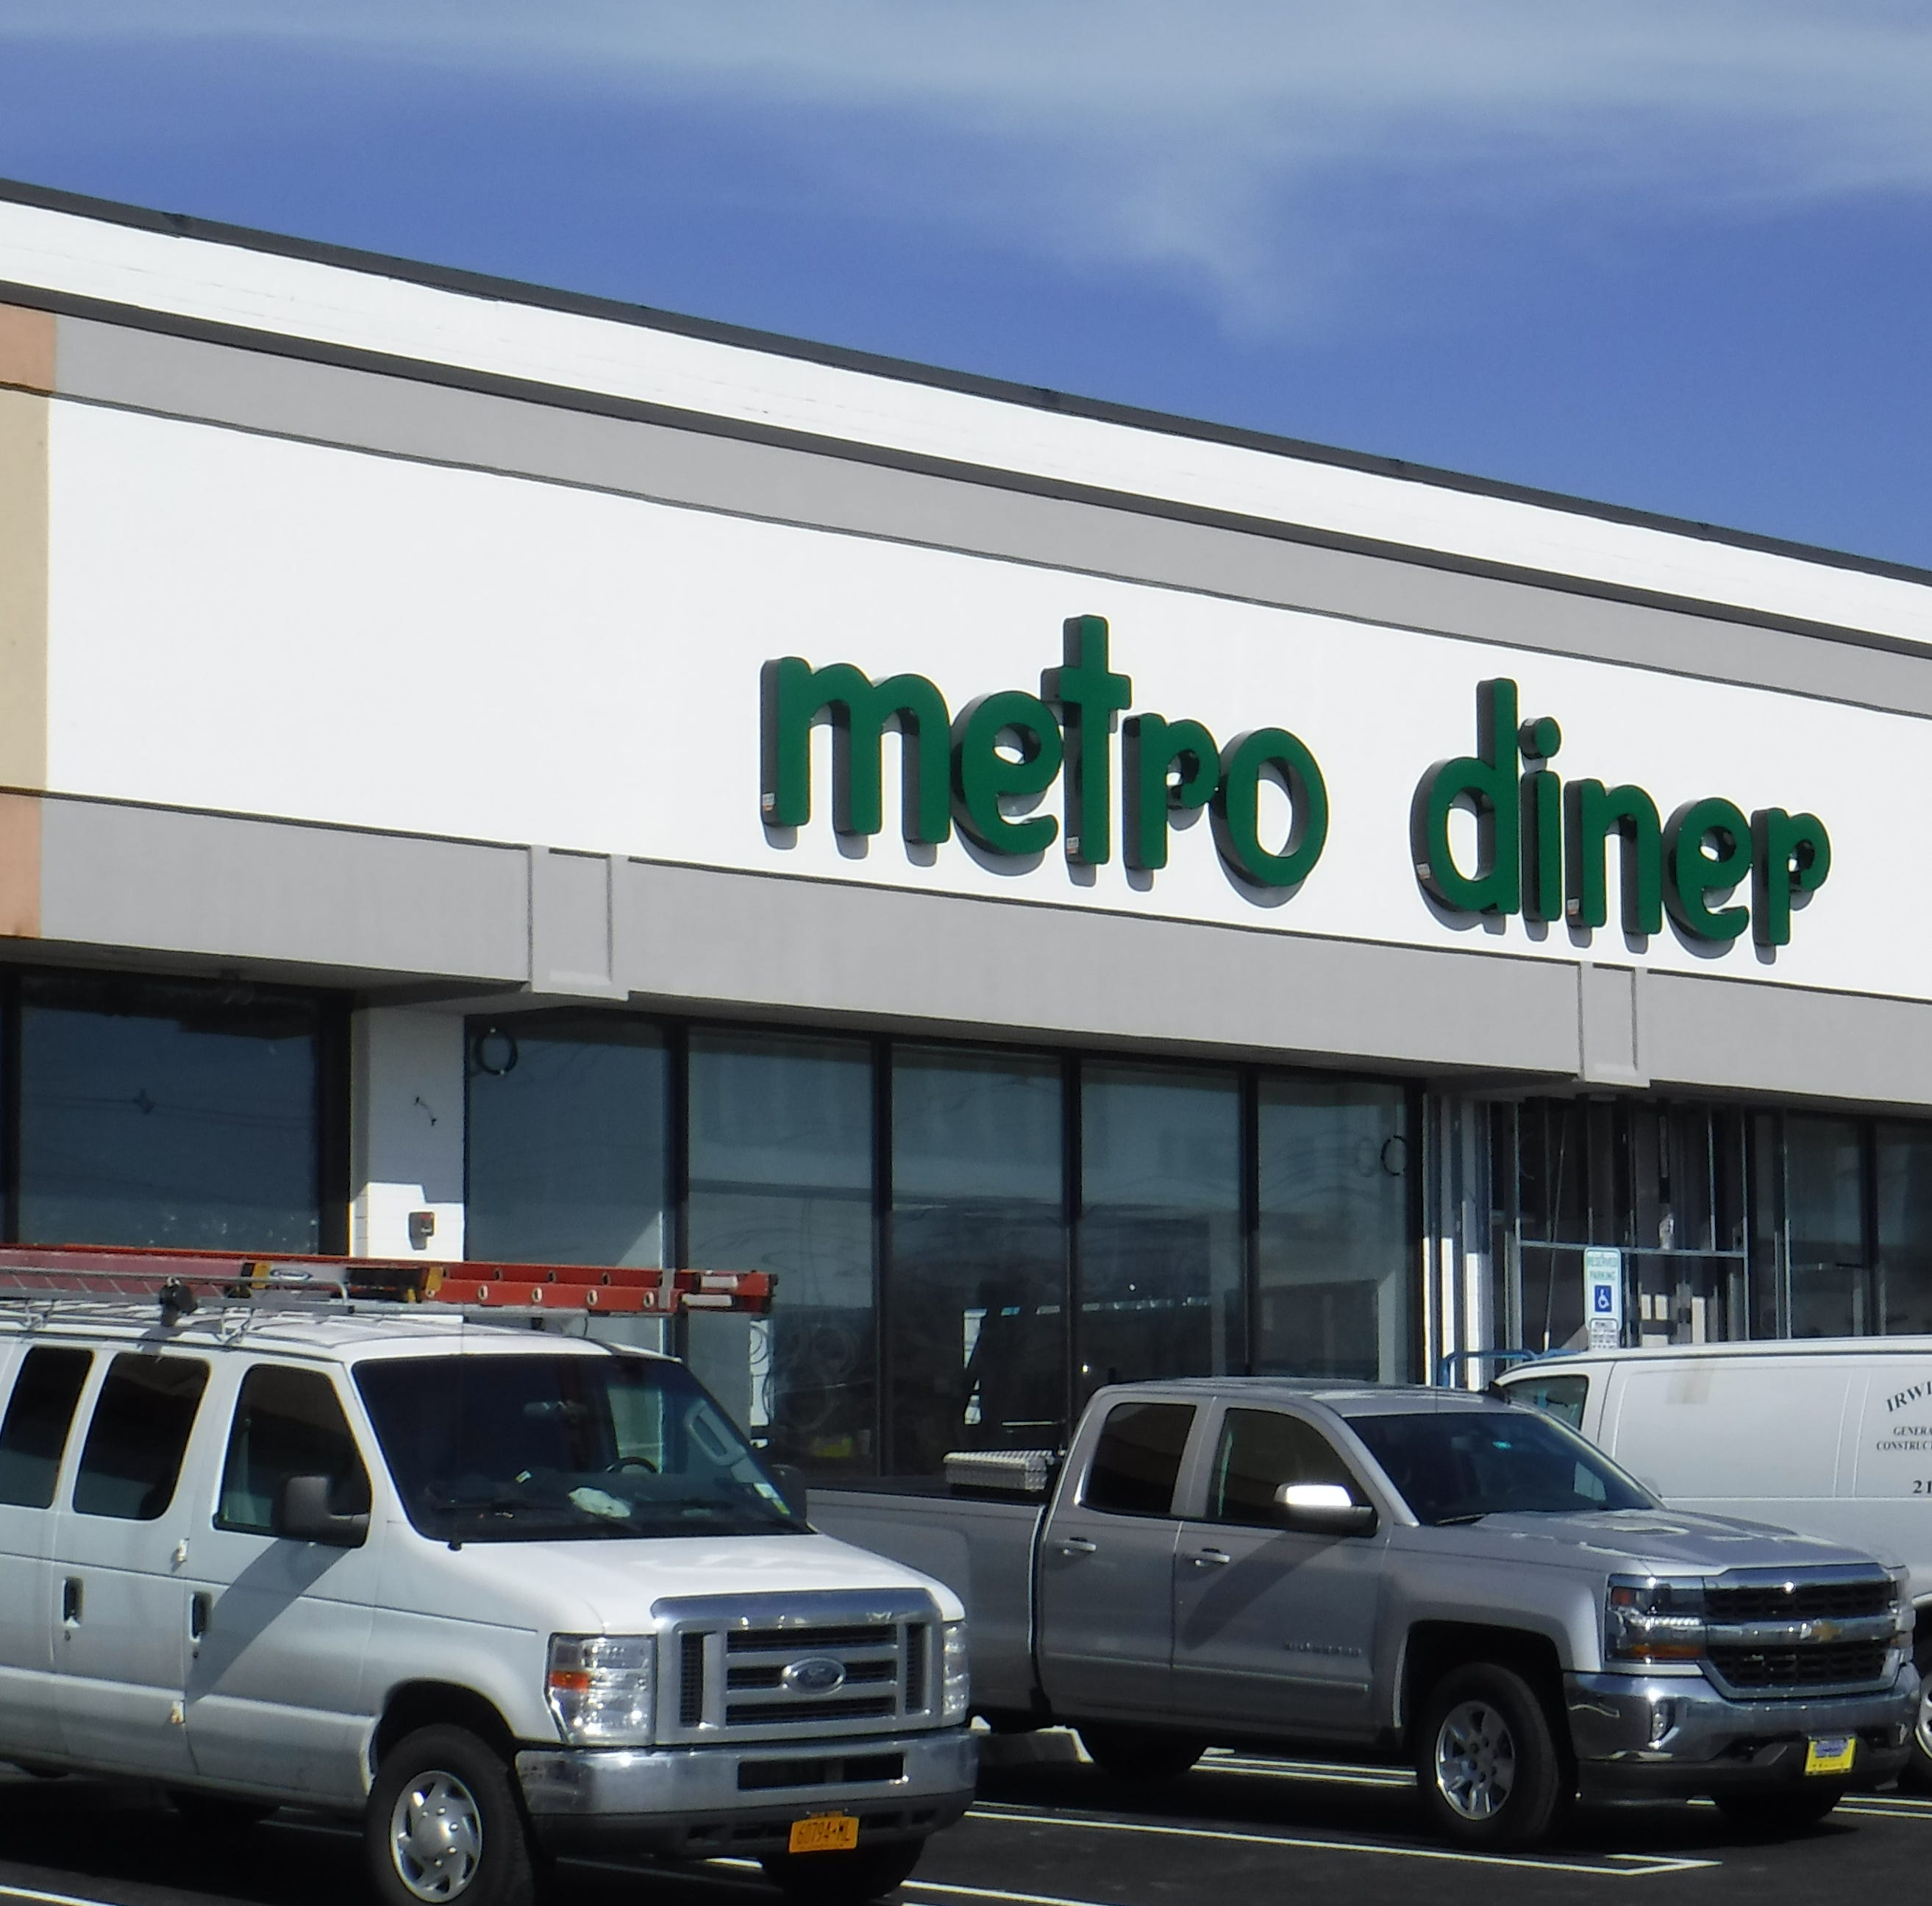 First NJ Metro Diner to open in East Brunswick